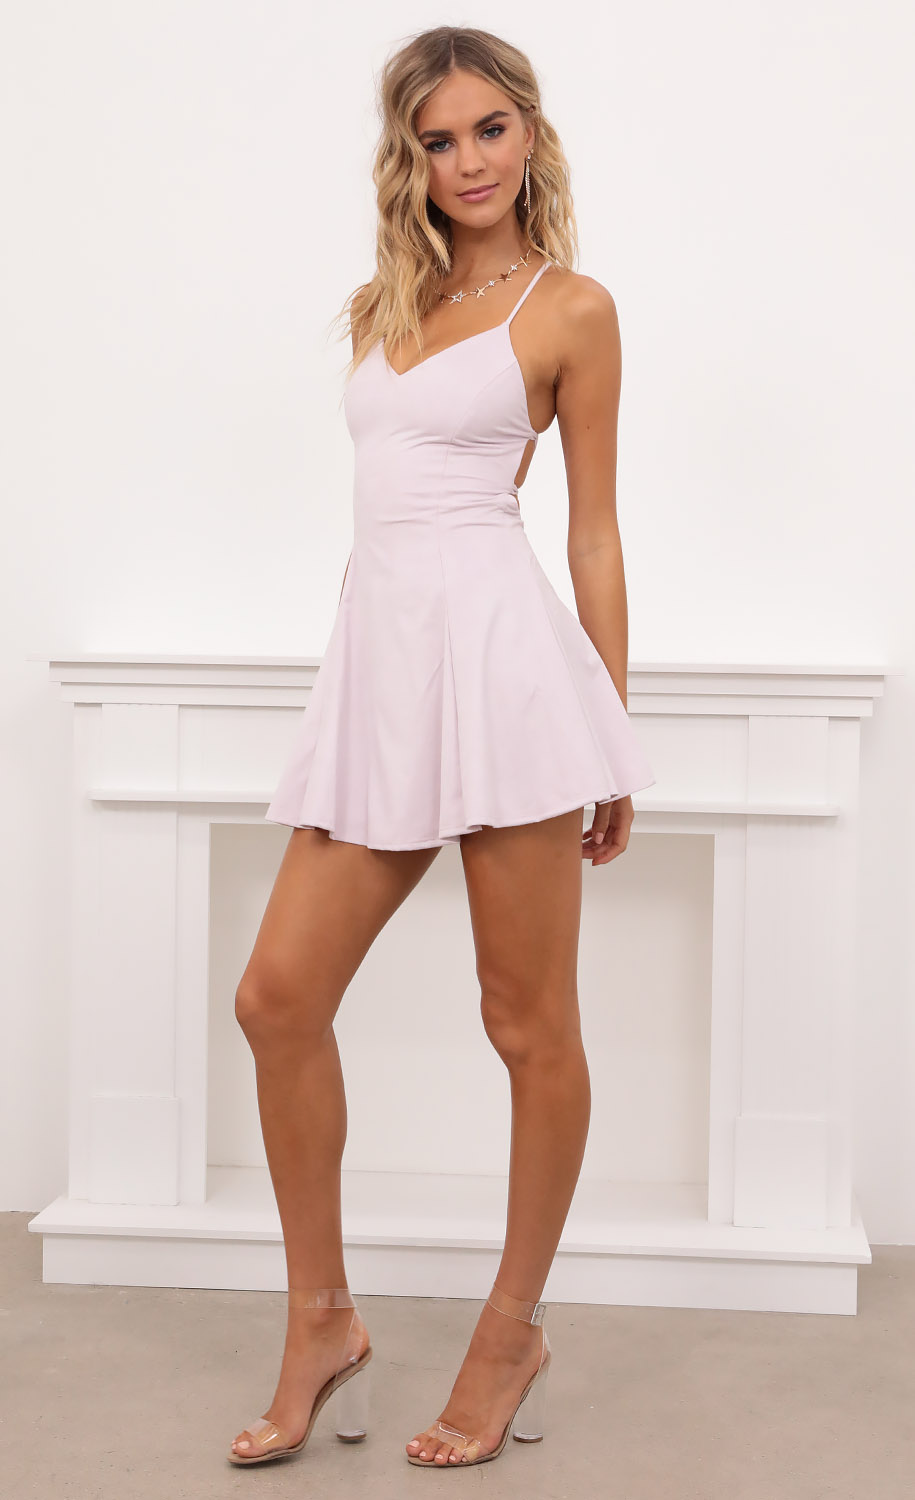 Marley Suede A-line Dress in Light Pink